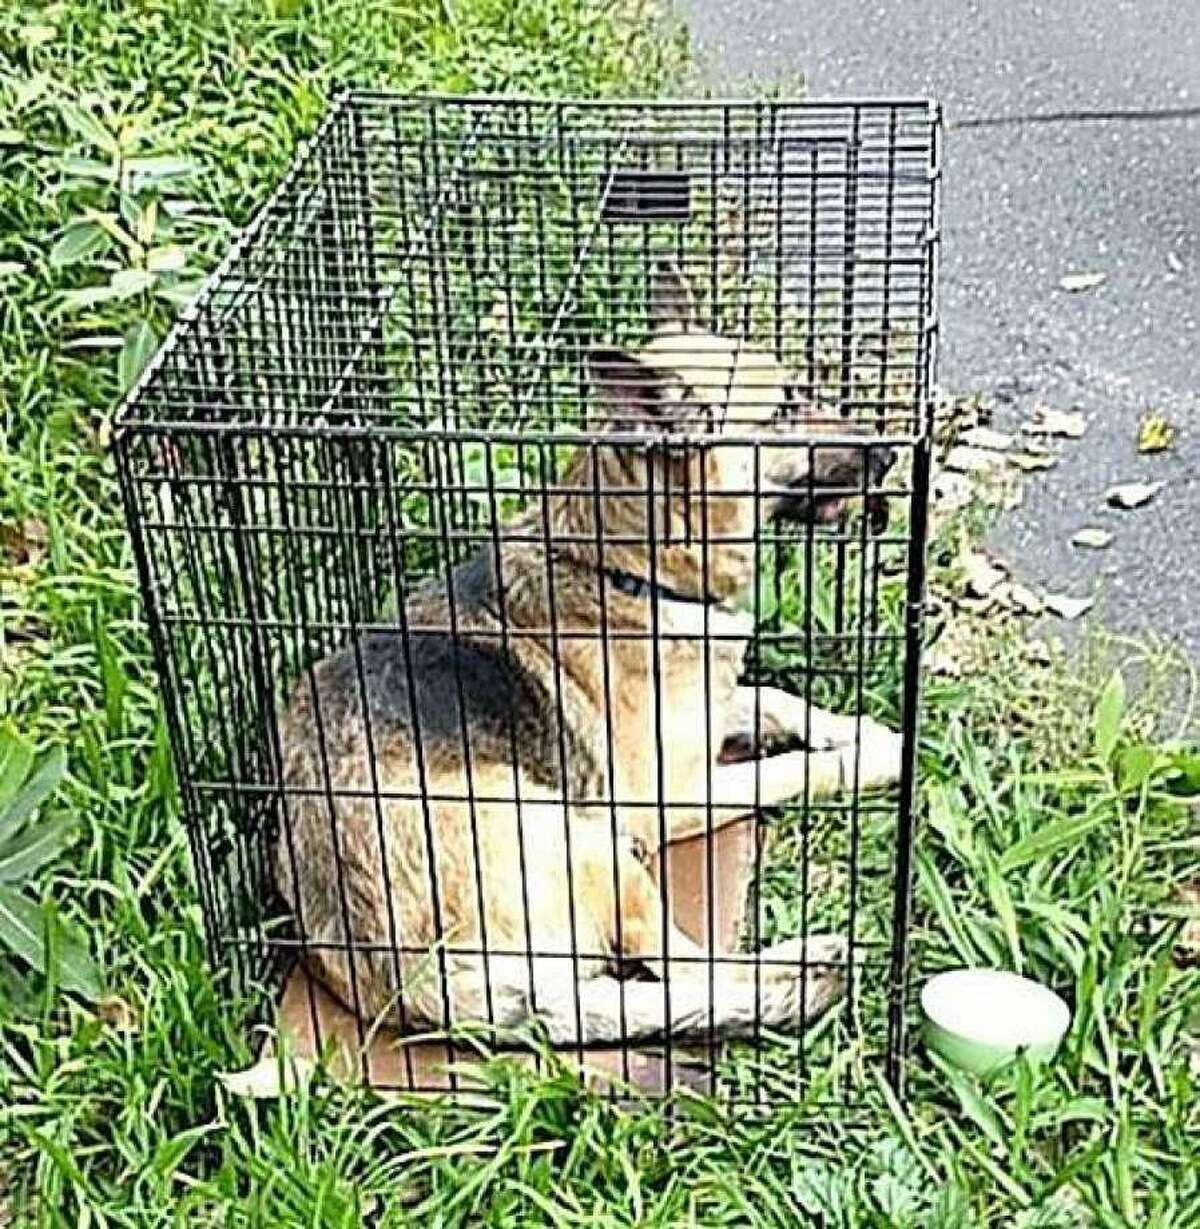 Police are looking for the person who left an adult male German shepherd in a crate down an embankment in mid-September. The dog was found suffering from dehydration. After taking the dog to a veterinarian and a review by local animal control and K-9 officers, it was determined that the animal was overly aggressive, likely from a lifetime of abuse, and could not safely be adopted. Officials felt they had no choice but to euthanize the dog